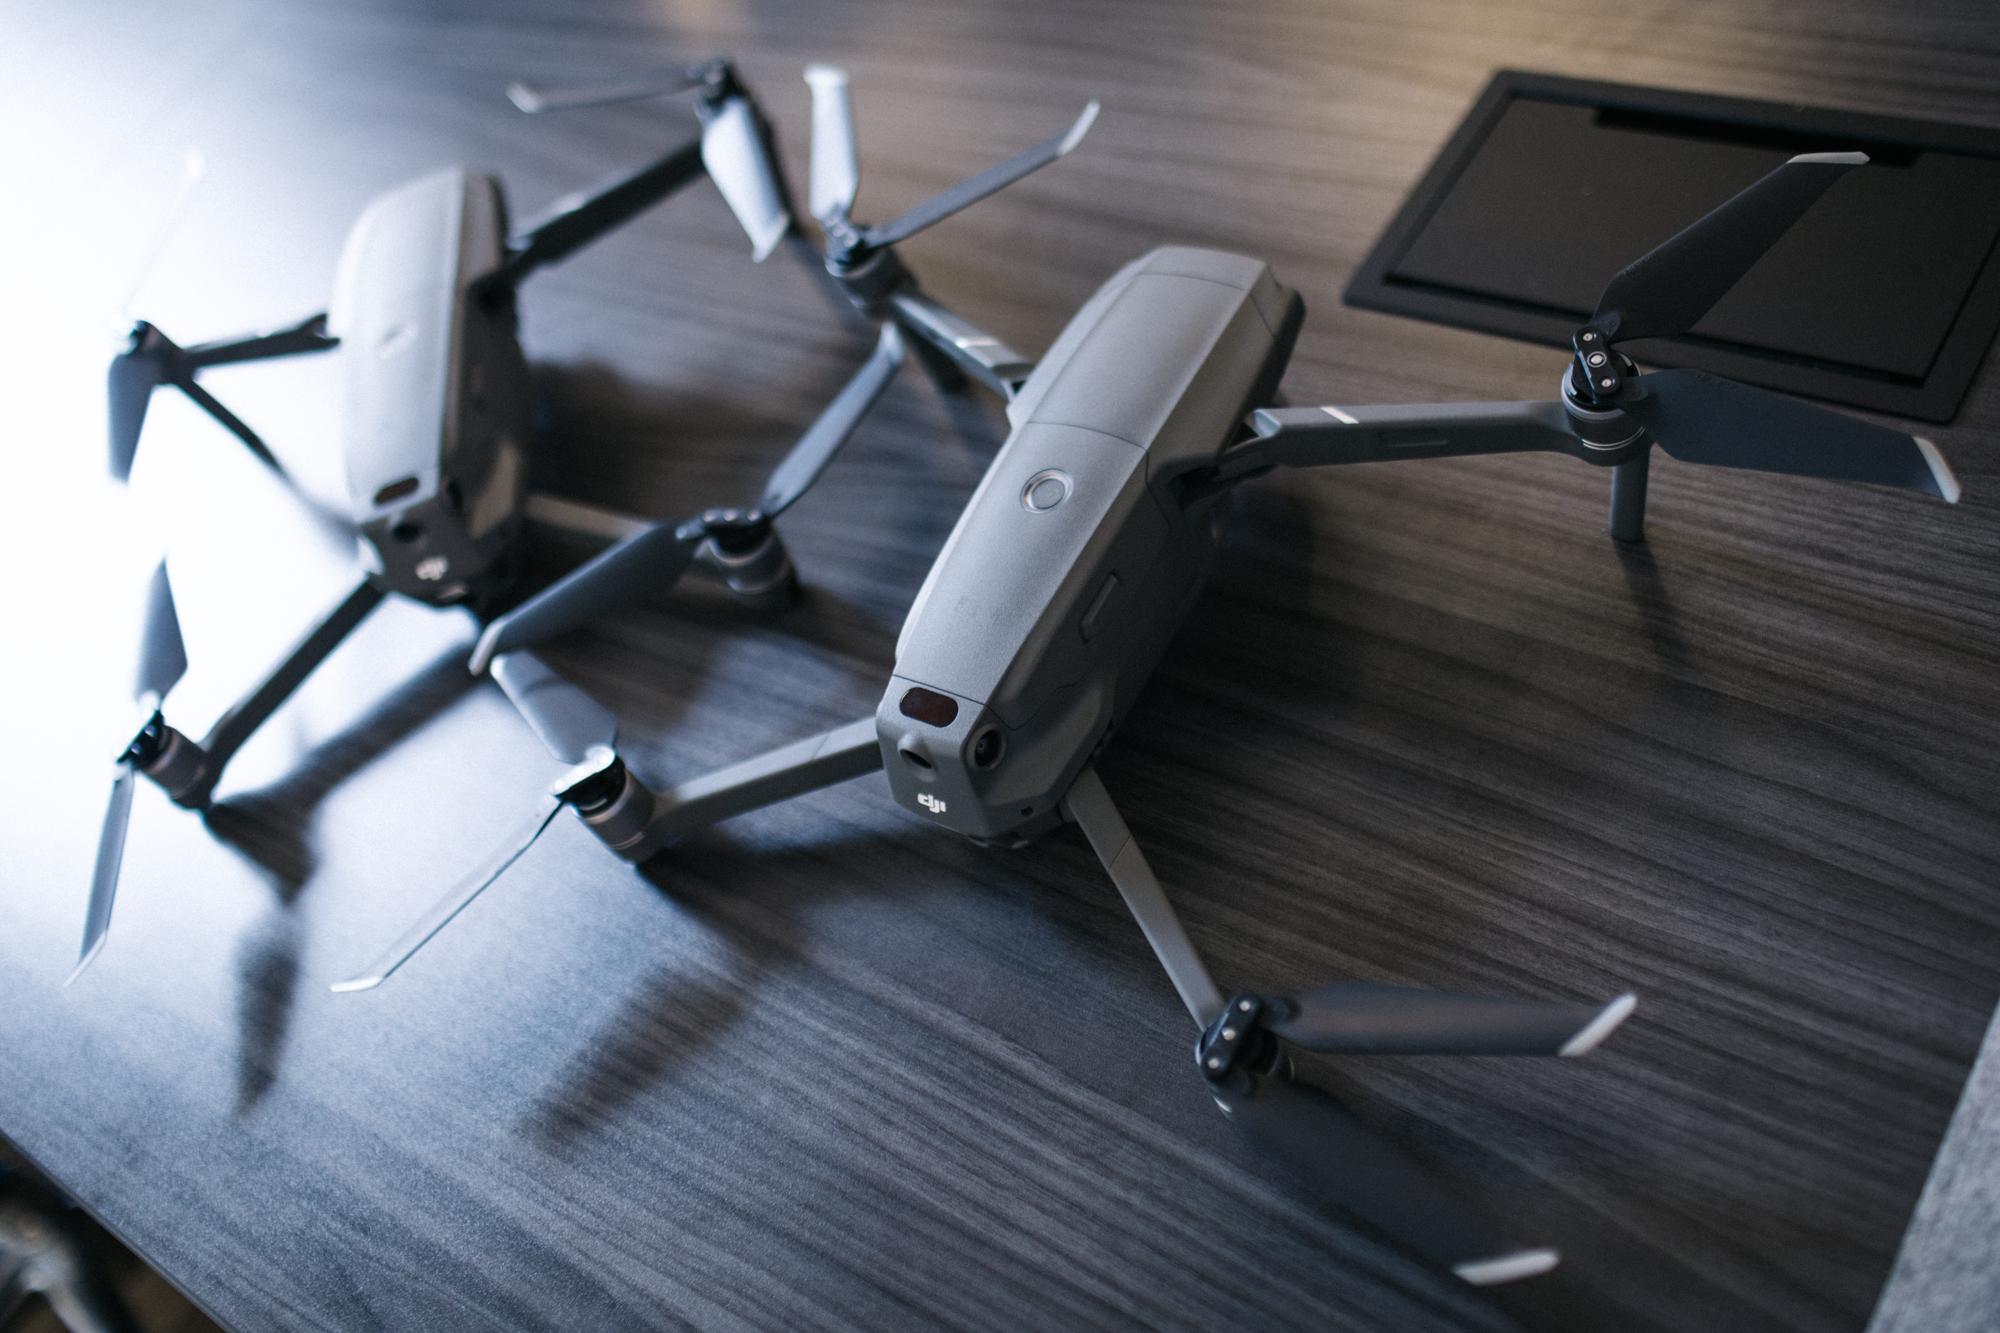 DJI's Mavic 2 brings key camera upgrades to the folding drone